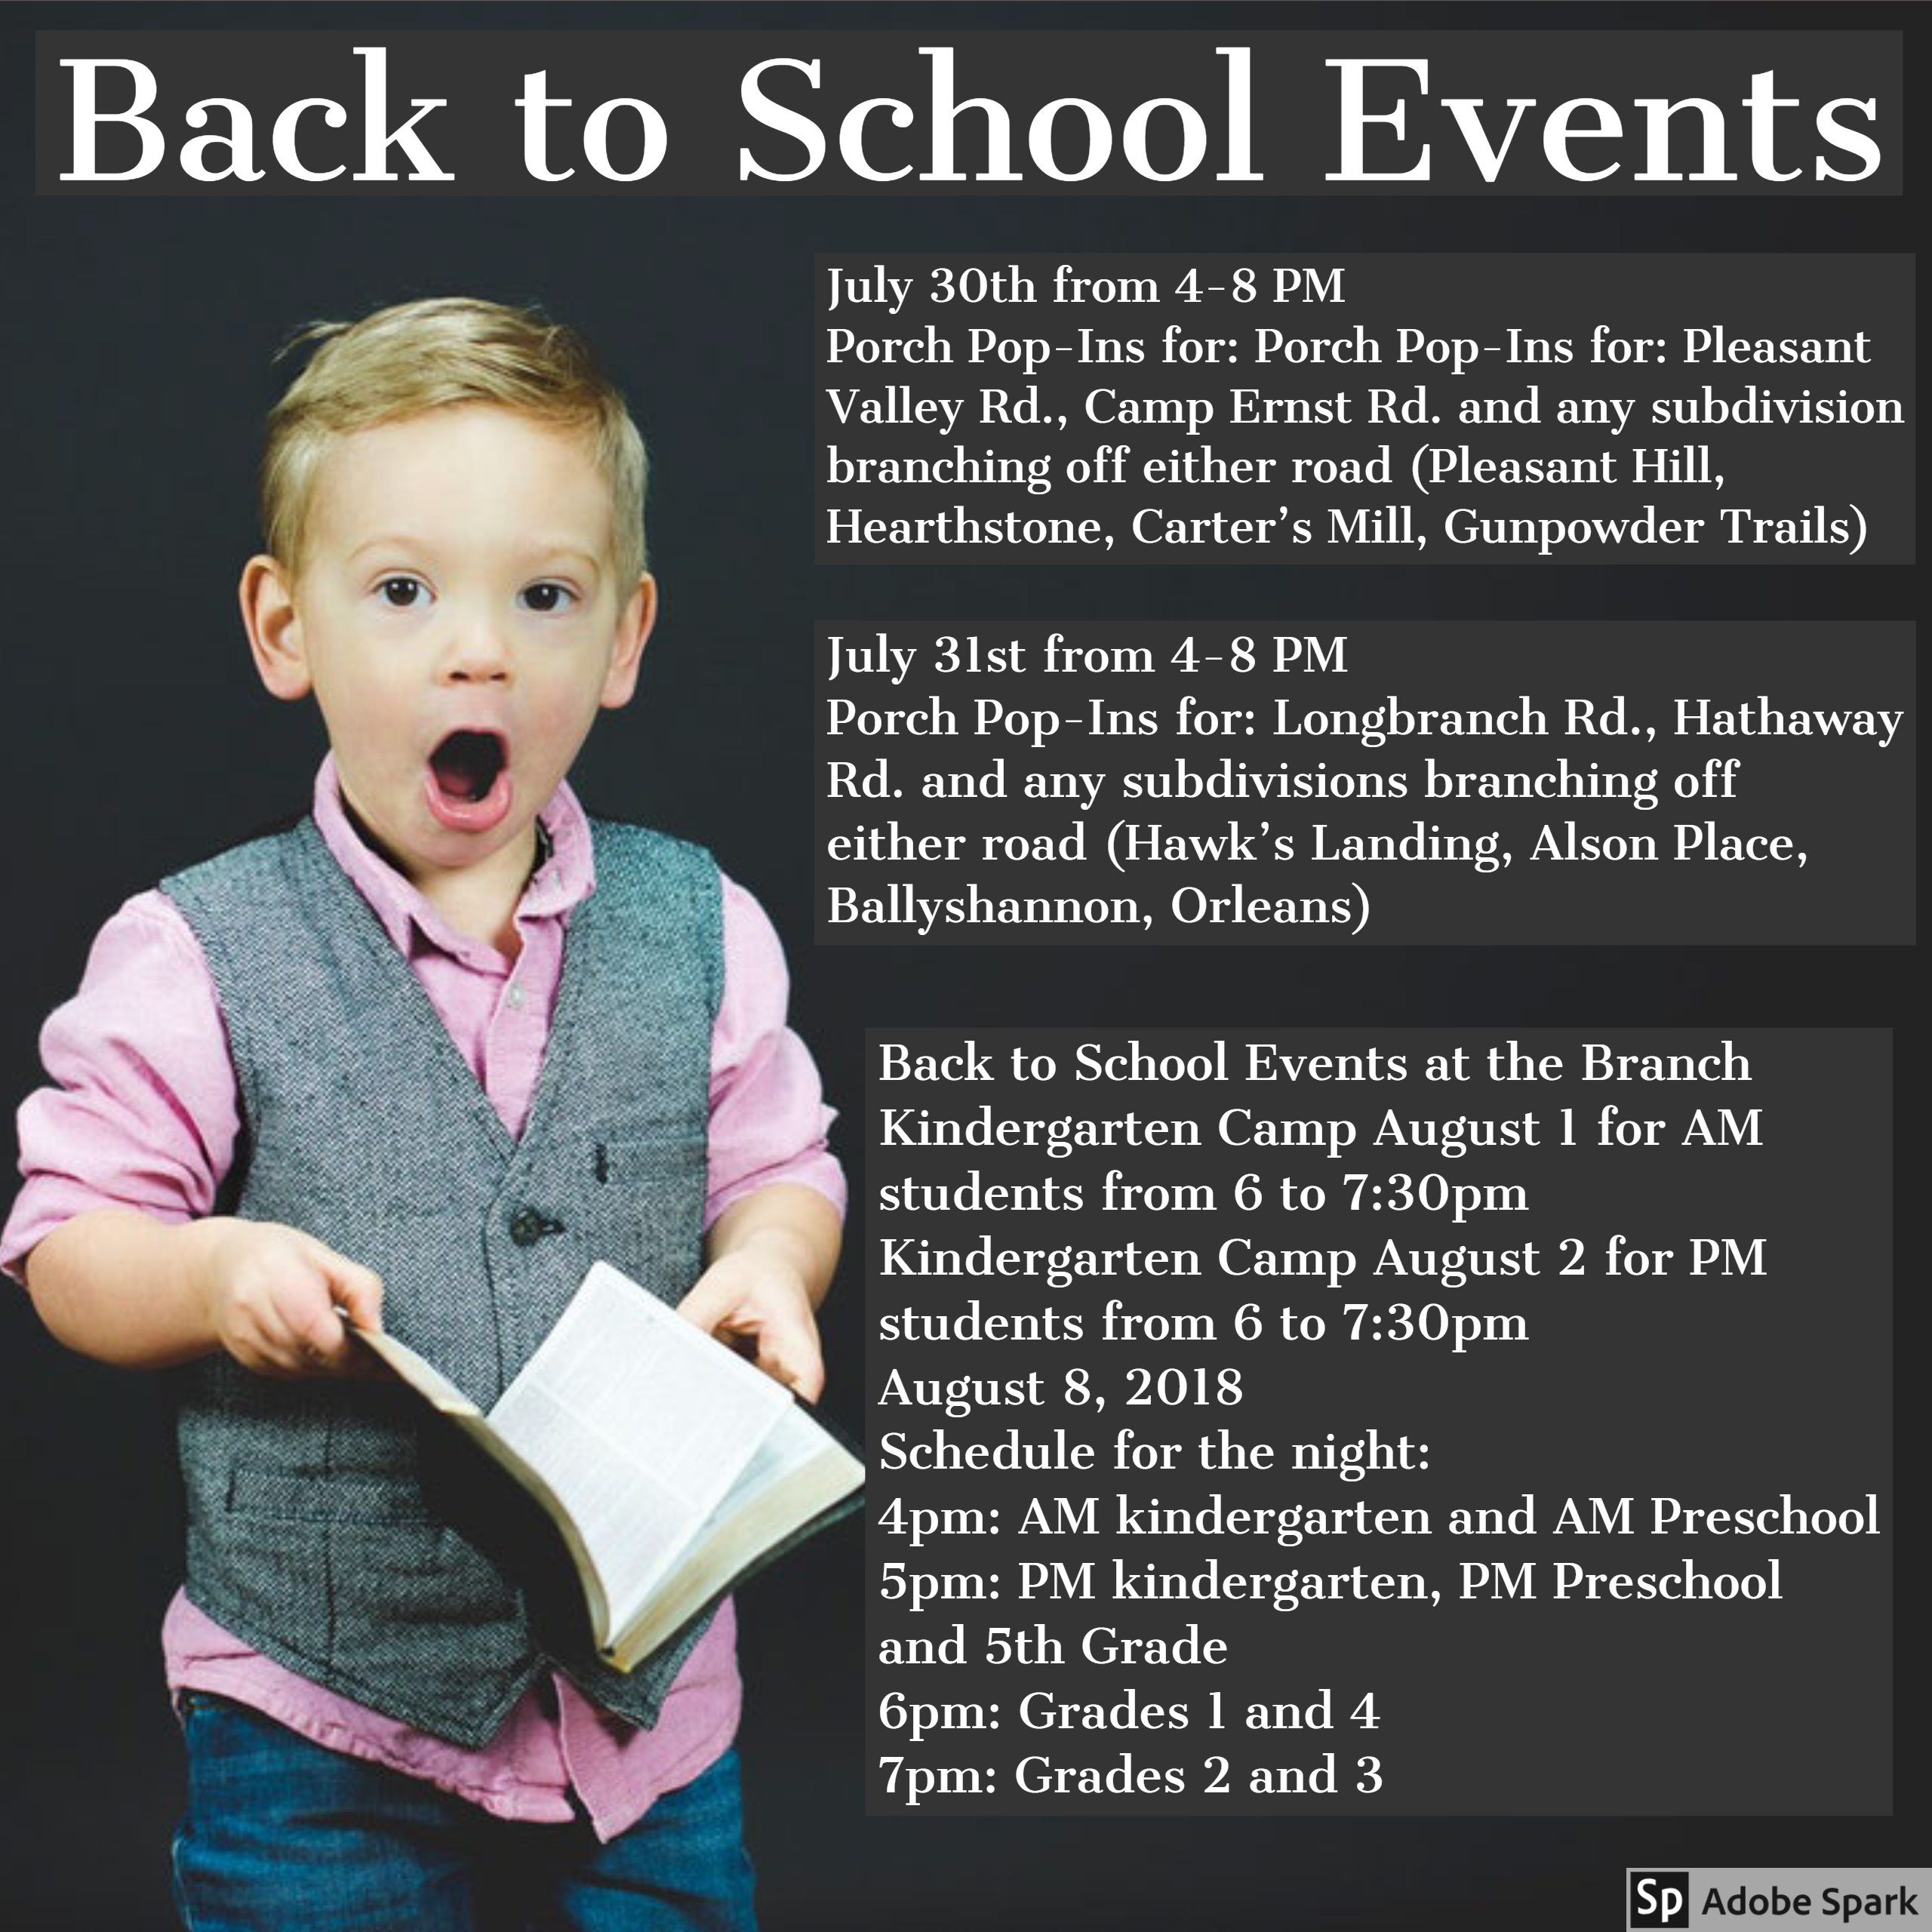 Back To School at the Branch